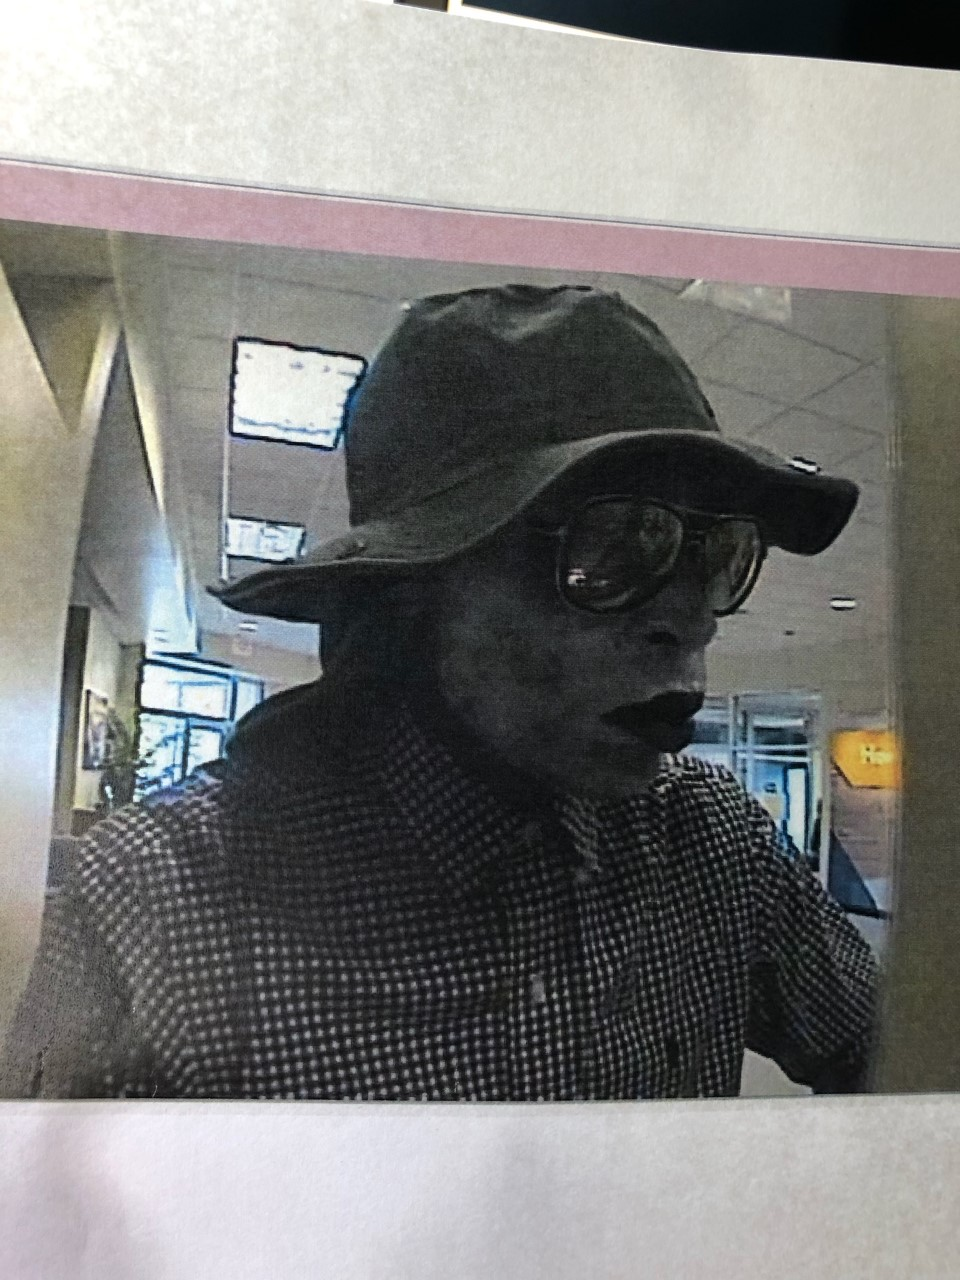 Suspect robs ABNB Federal Credit Union in Suffolk